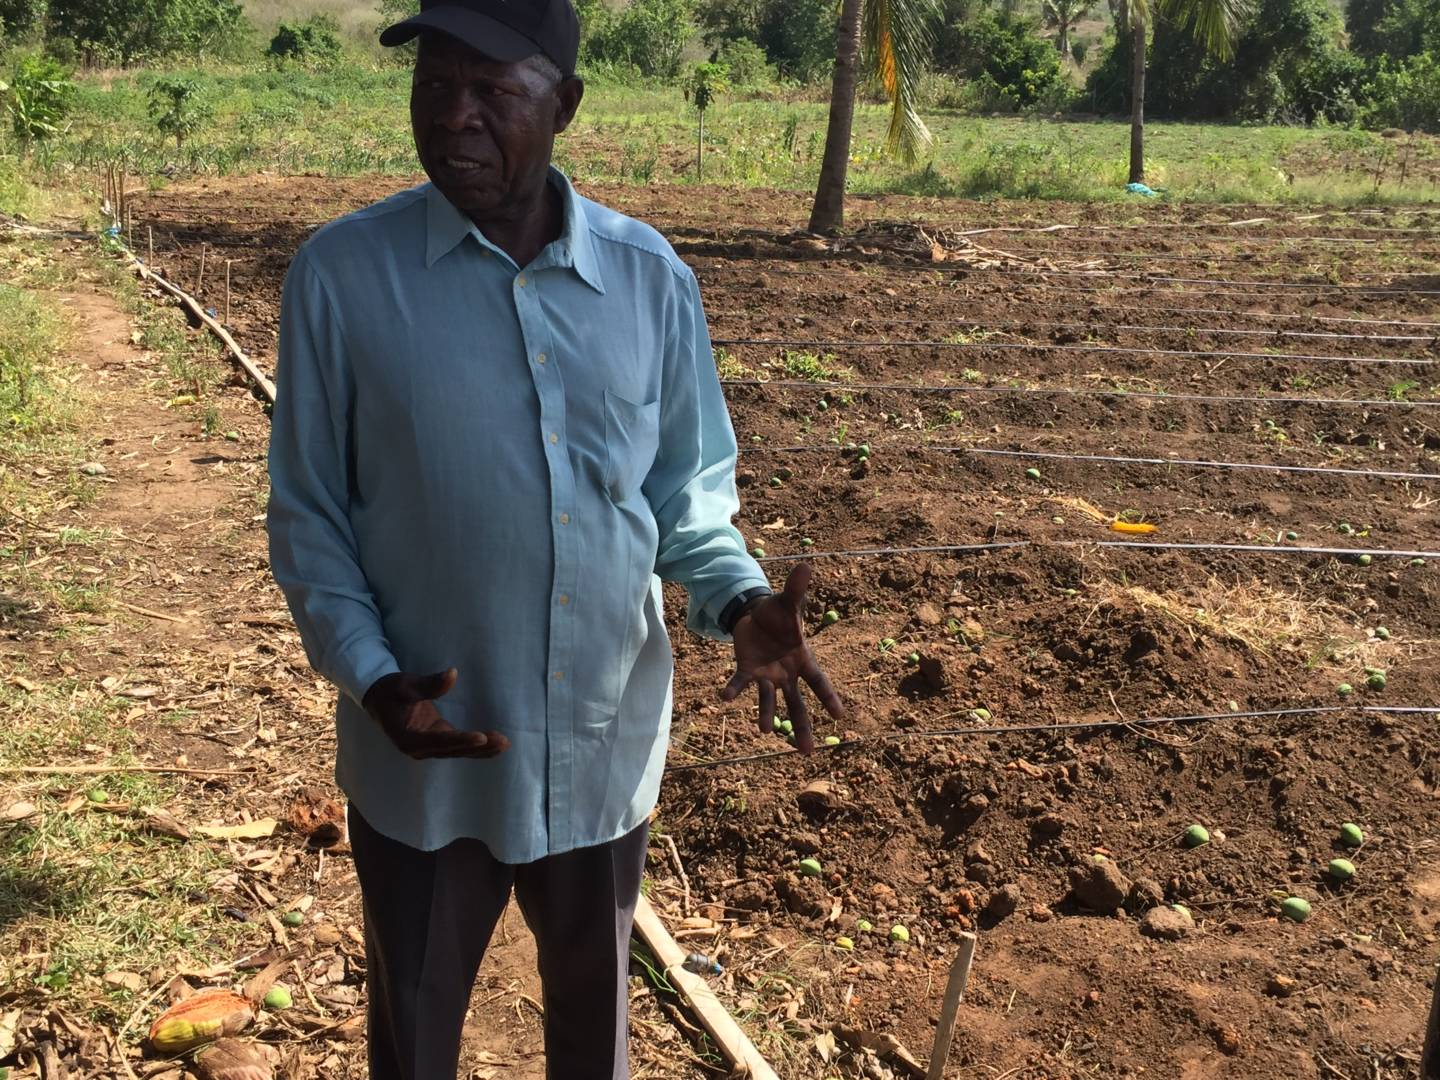 Christian Kayombo shows off his current cassava crop. © 2016 World Vision/photo by Silas Urio